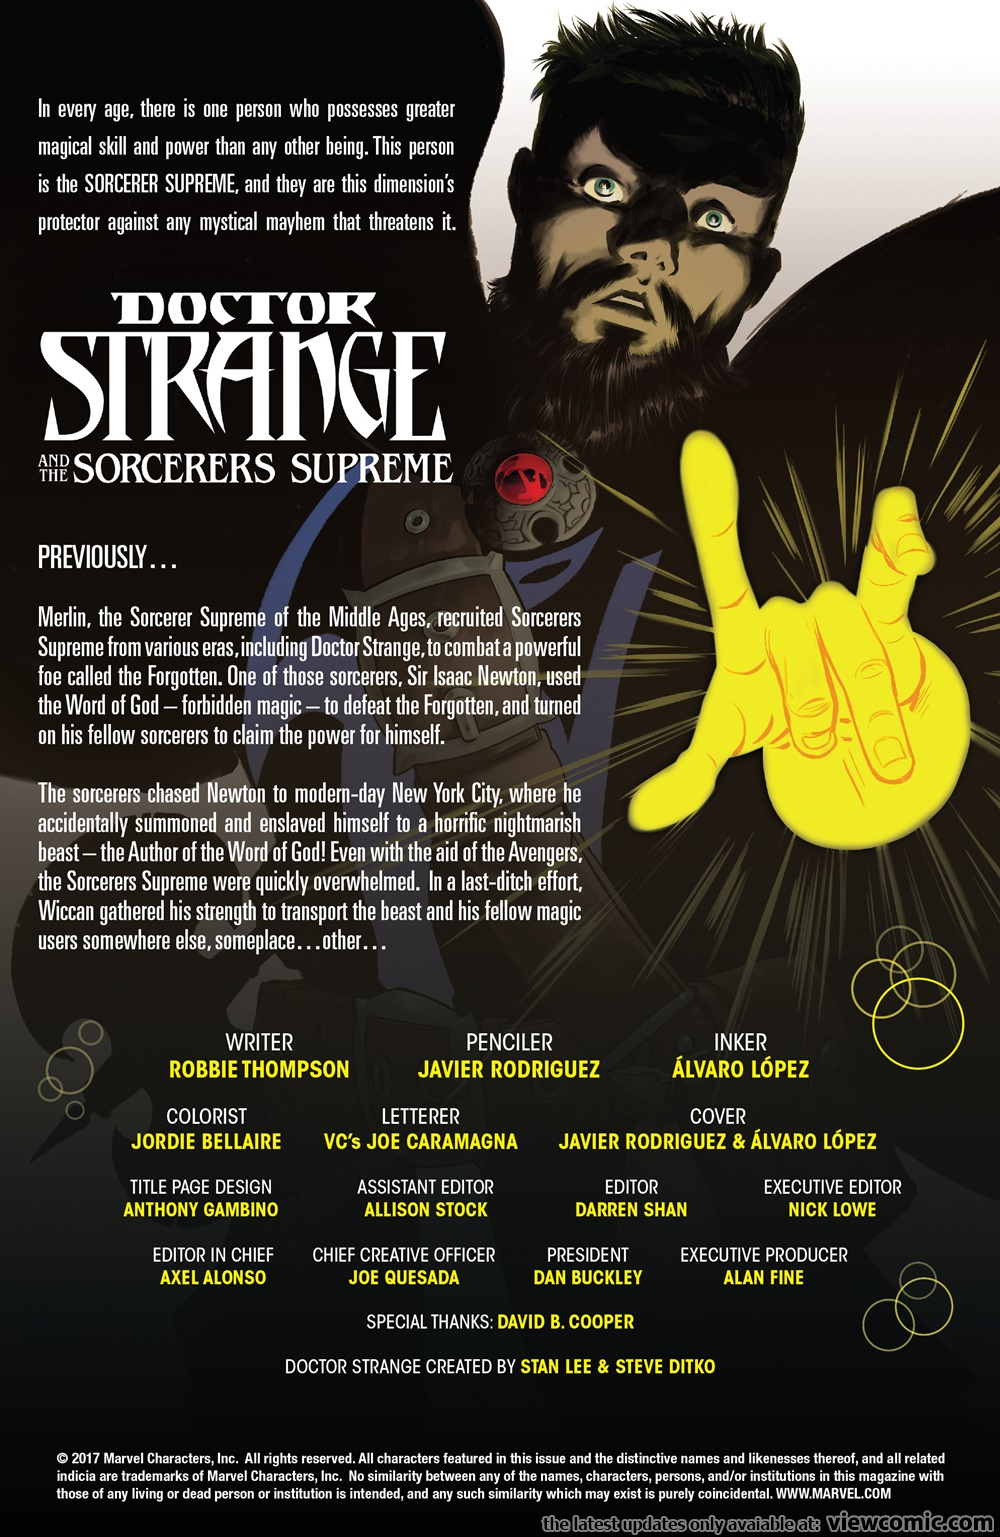 Doctor Strange and the Sorcerers Supreme 009 (2017)   Vietcomic.net reading comics online for free